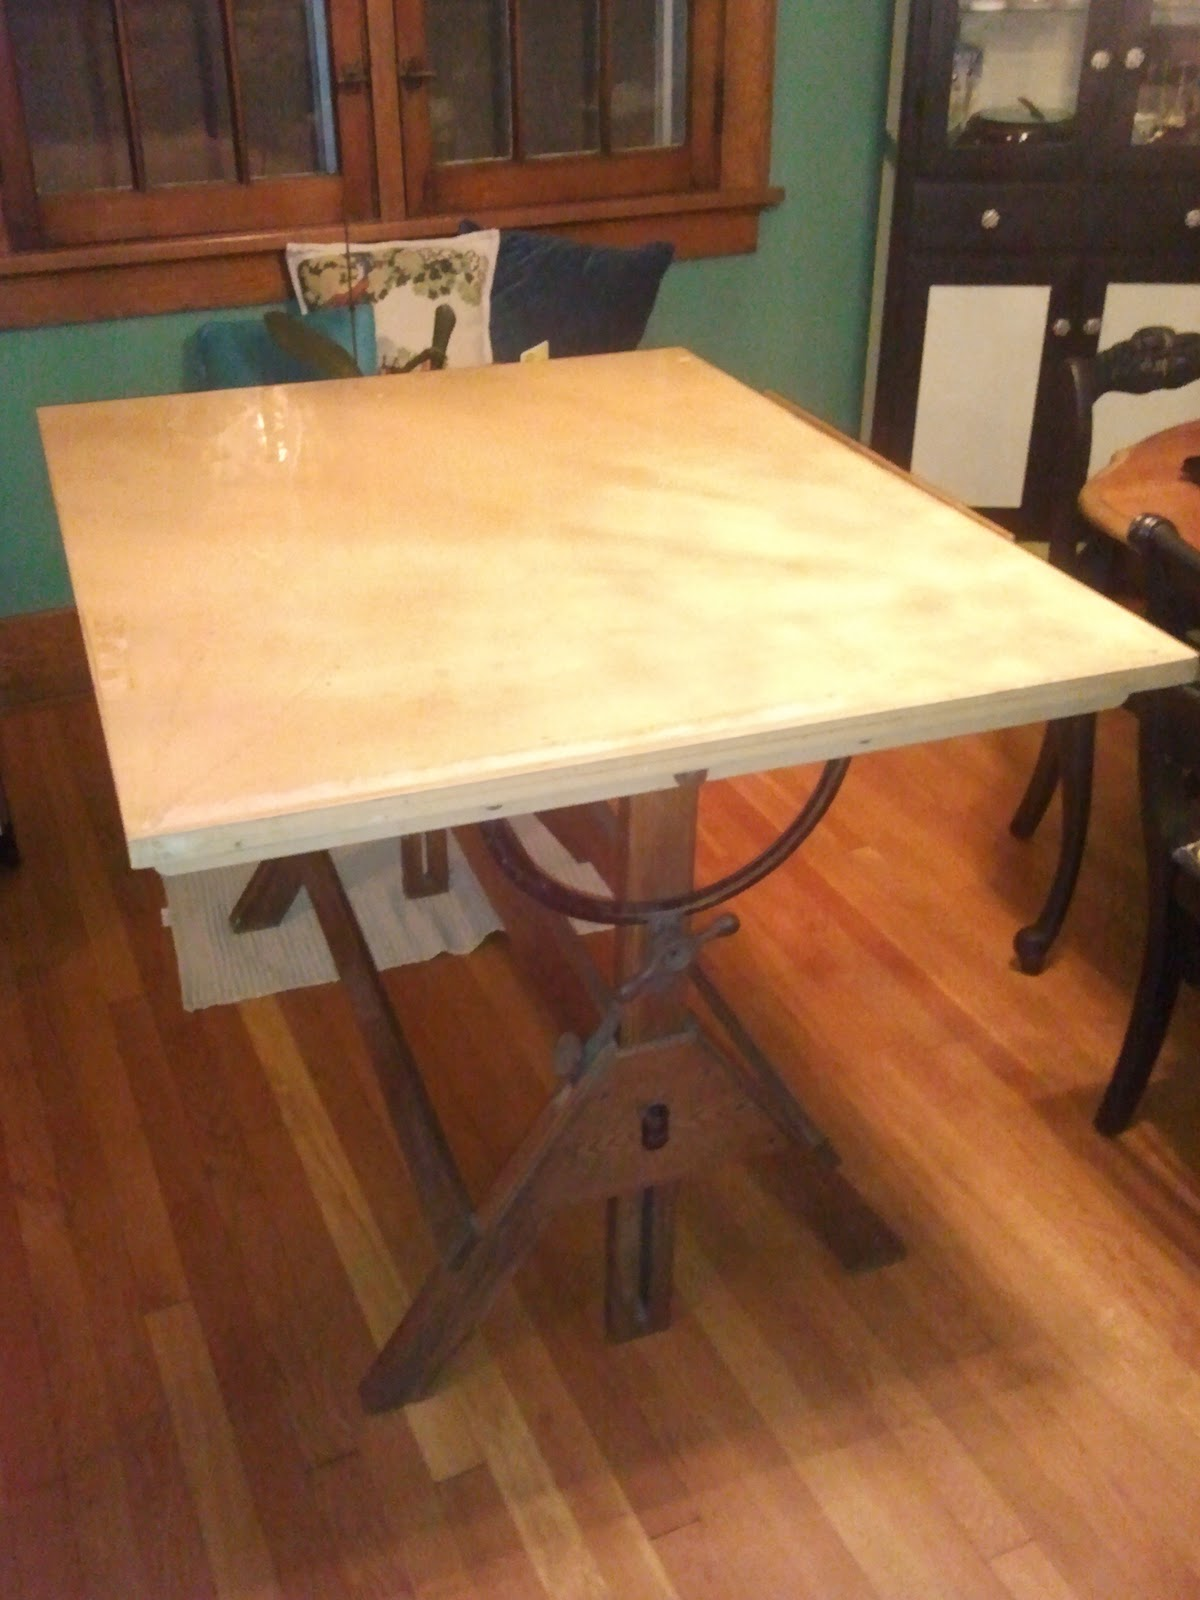 Antique Drafting Table Craigslist Home Design 2017